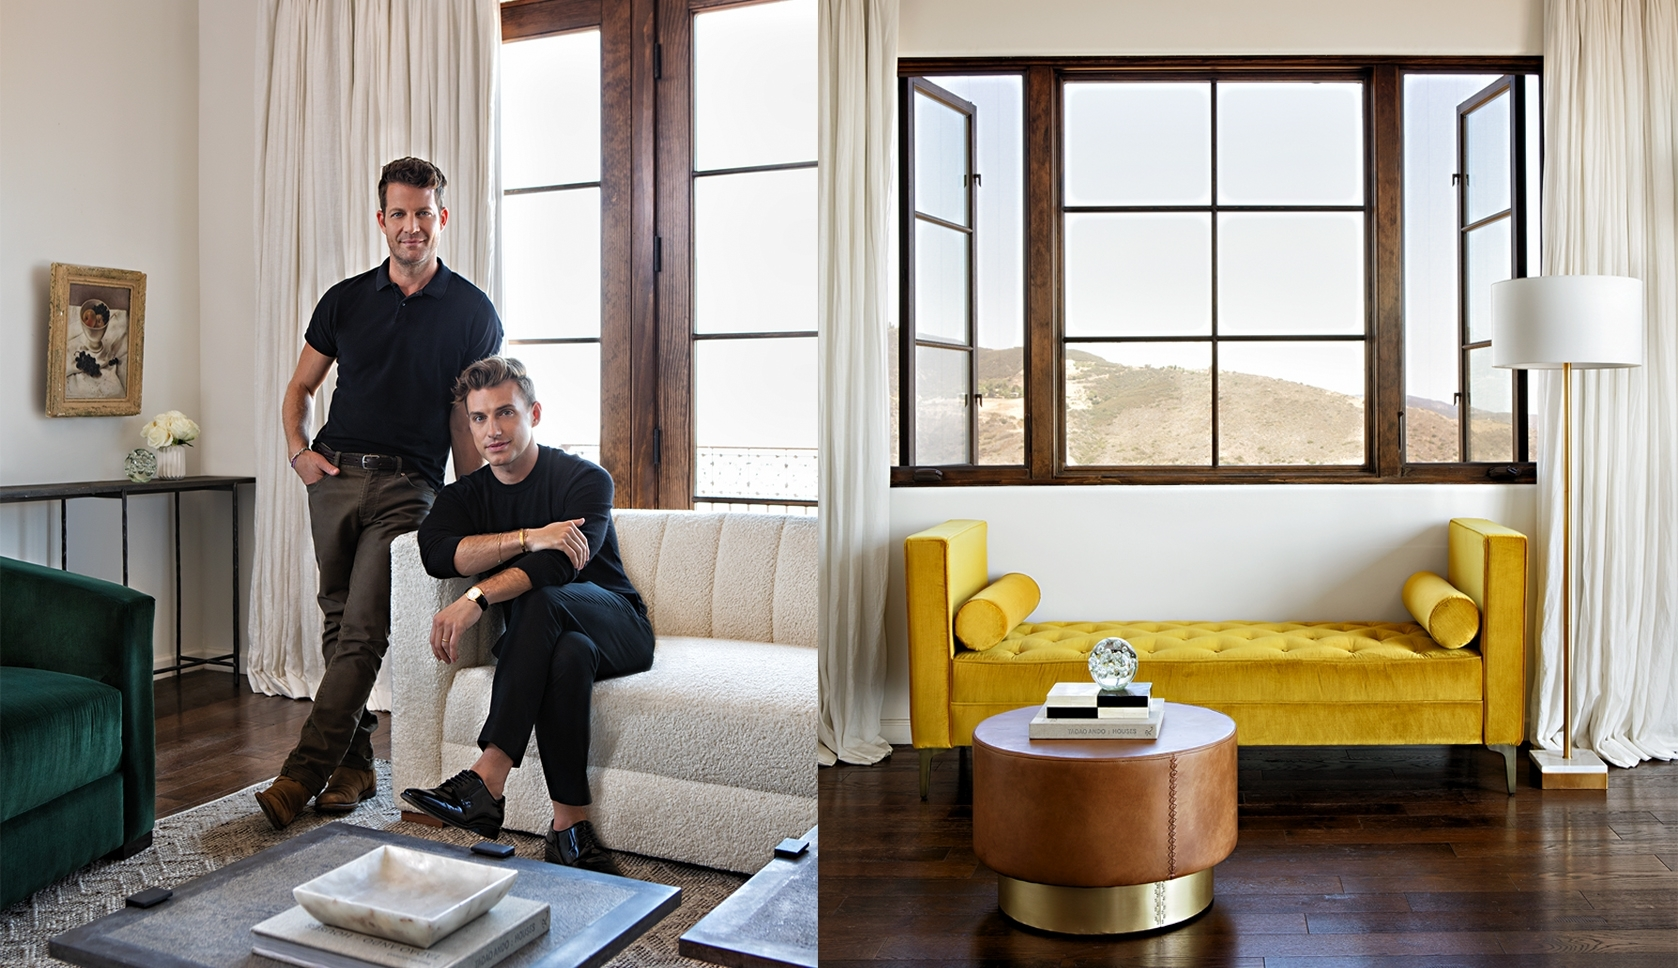 Nate Berkus & Jeremiah Brent's Newest Affordable Collection | Rue Intended For Whitley 3 Piece Sectionals By Nate Berkus And Jeremiah Brent (Image 7 of 25)